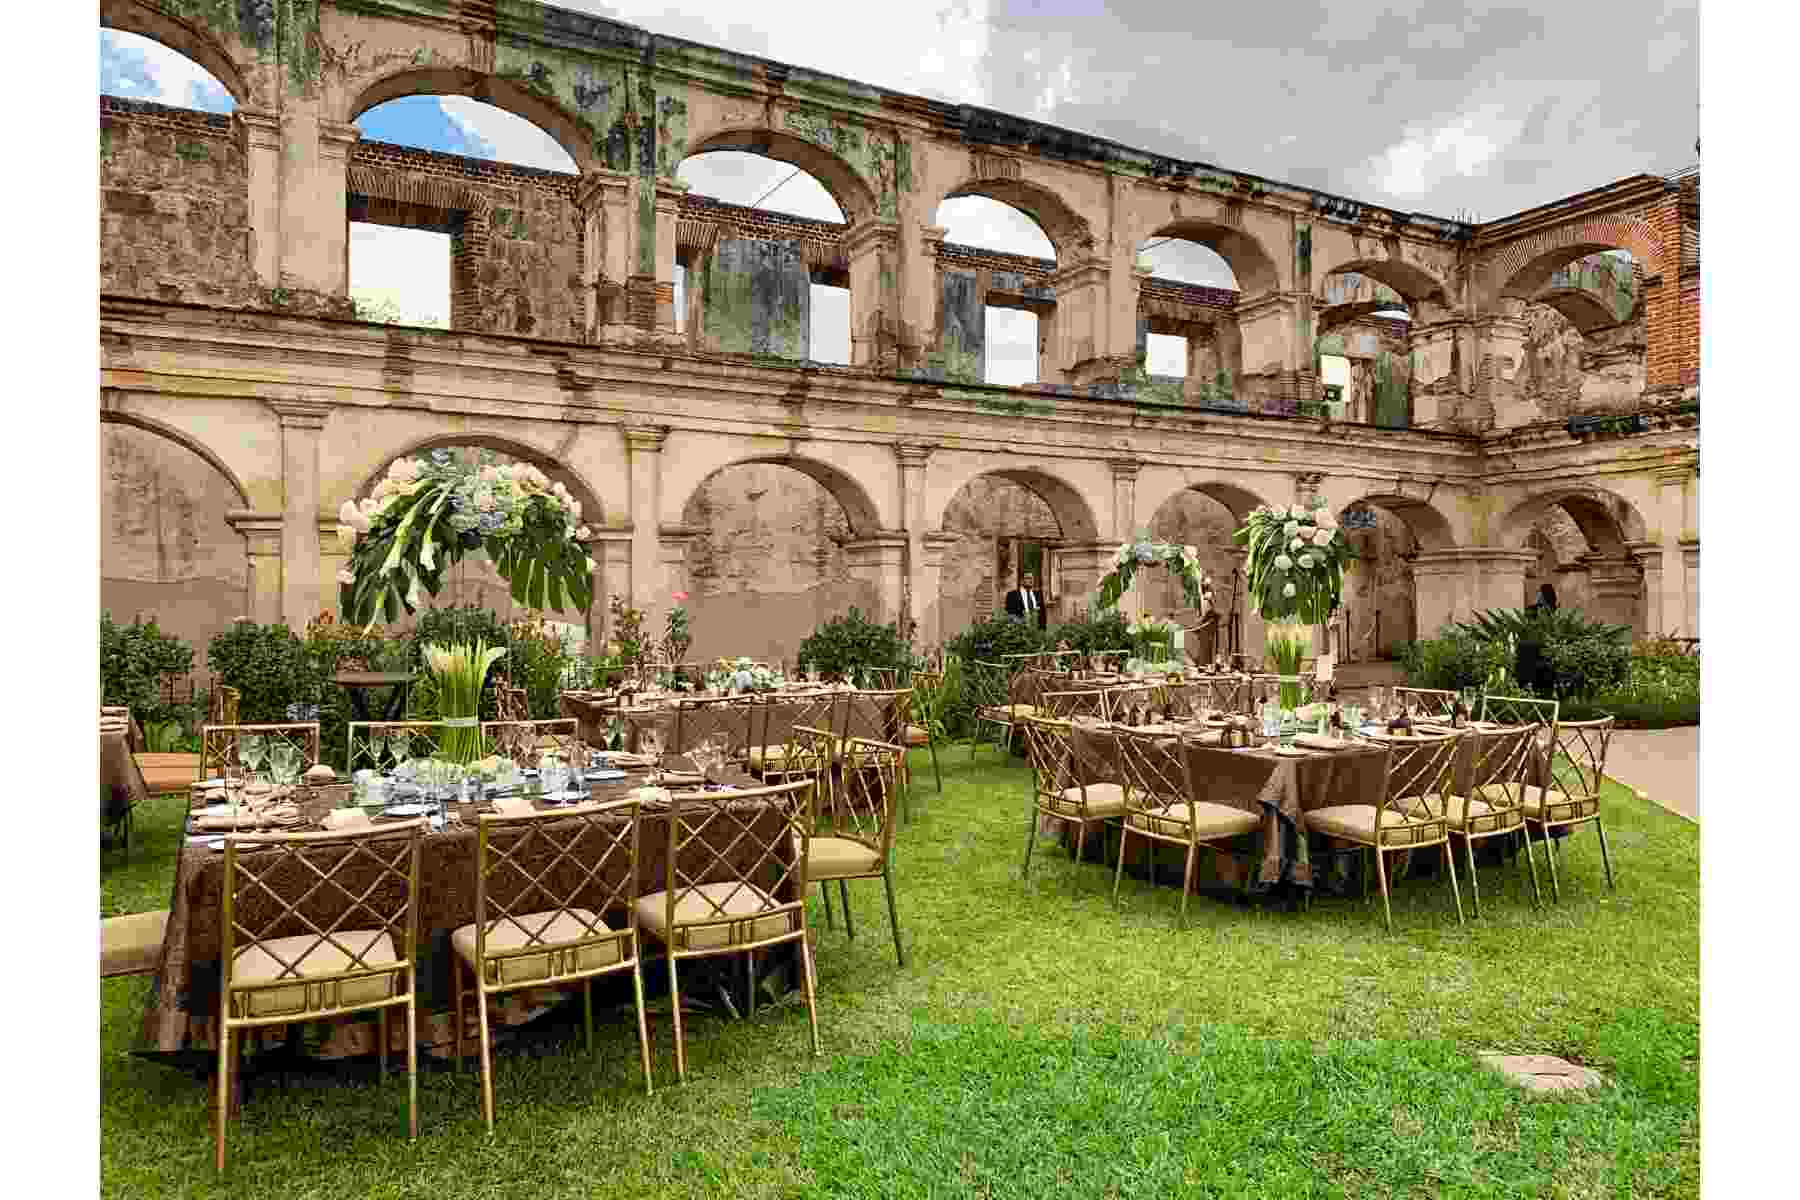 WEDDING IN THE BEAUTIFUL ANTIGUA, GUATEMALA